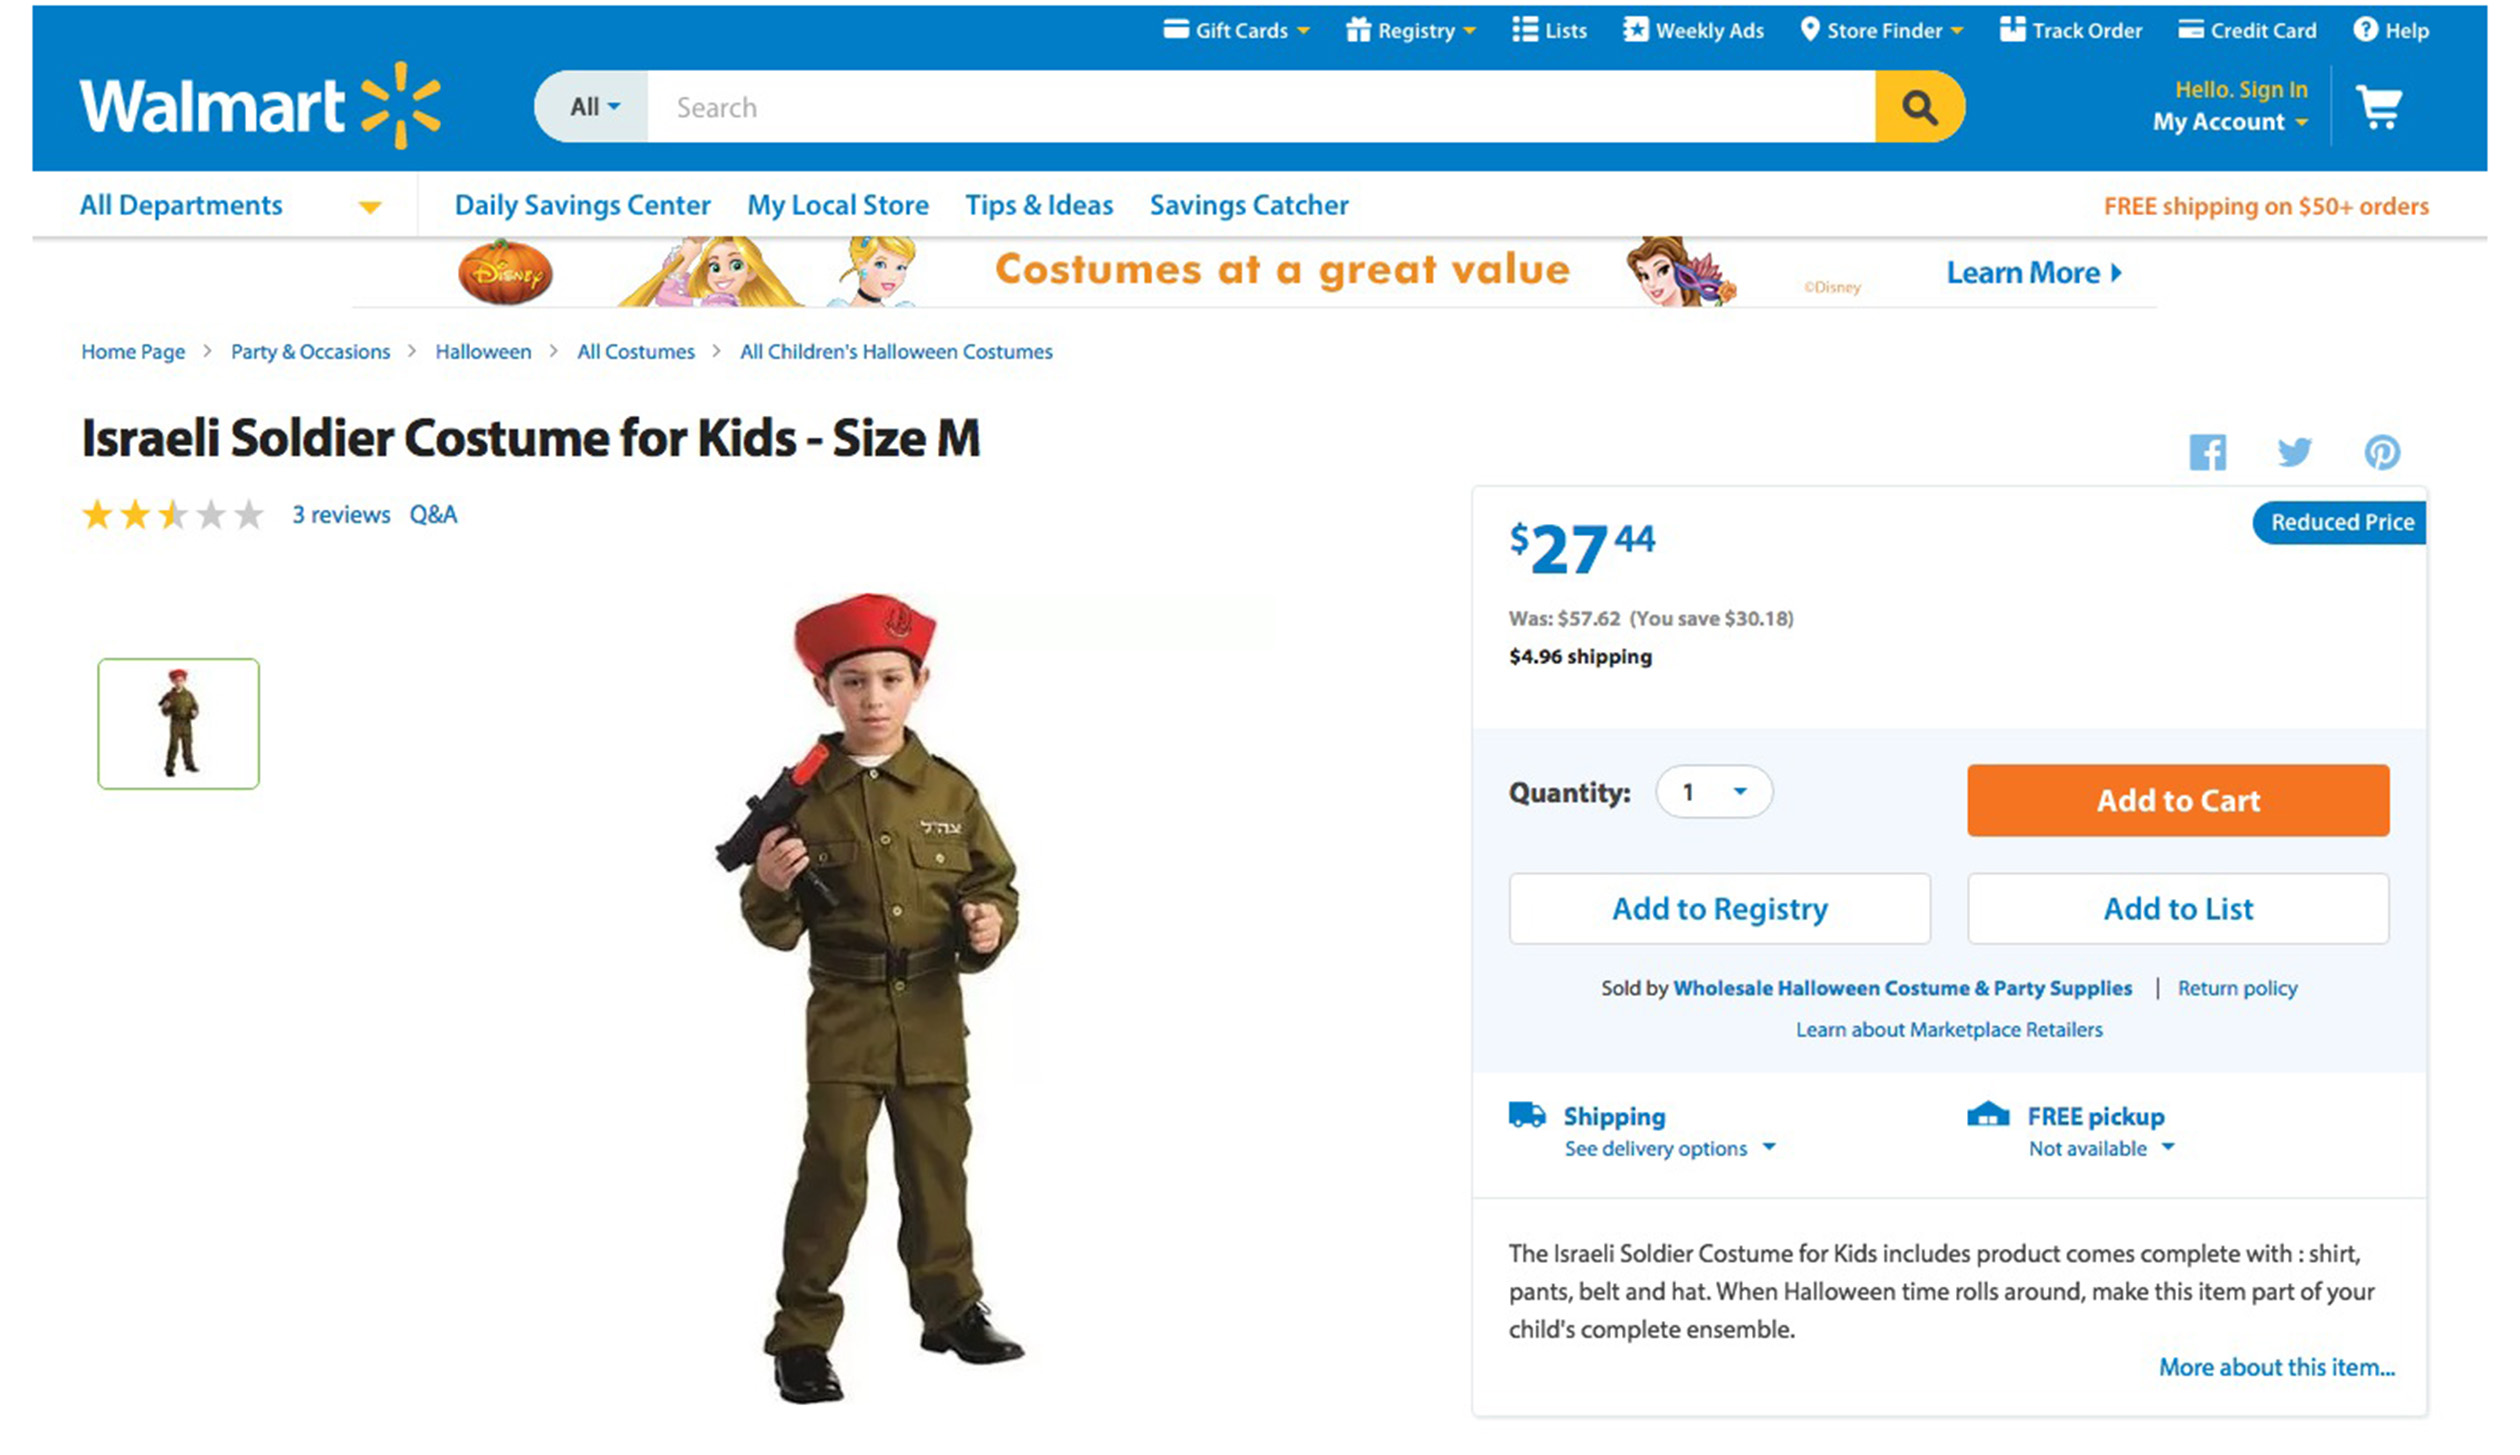 Screenshot from Walmart's website of  the Israeli Soldier Costume for Kids.